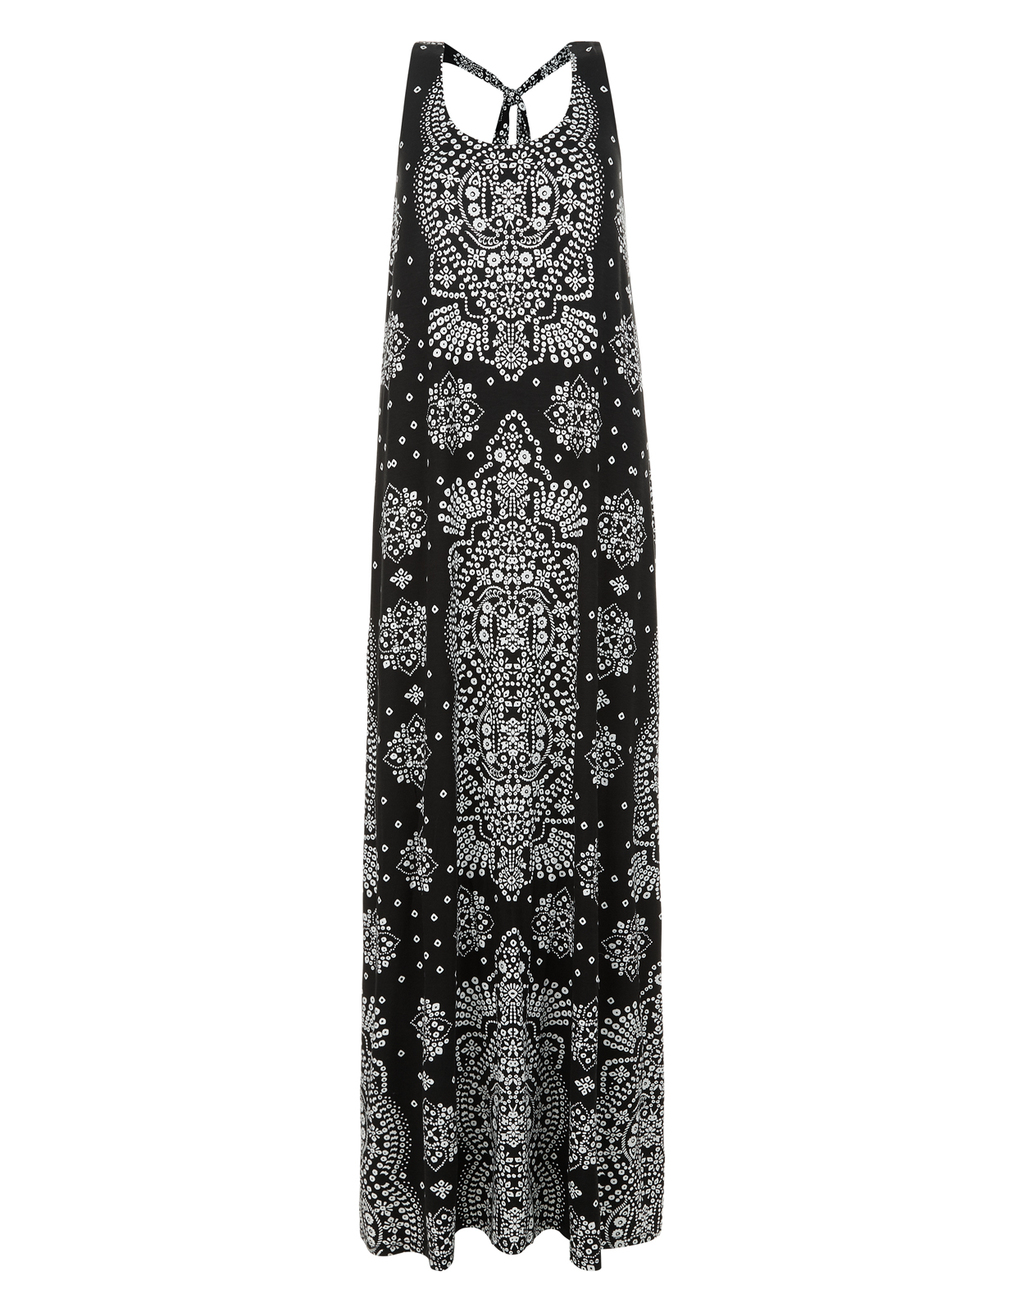 Madeline Printed Jersey Maxi Dress - sleeve style: standard vest straps/shoulder straps; style: maxi dress; length: ankle length; back detail: back revealing; secondary colour: light grey; predominant colour: black; occasions: casual, holiday; fit: body skimming; neckline: scoop; fibres: polyester/polyamide - 100%; sleeve length: sleeveless; pattern type: fabric; pattern size: big & busy; pattern: patterned/print; texture group: jersey - stretchy/drapey; season: s/s 2016; wardrobe: highlight